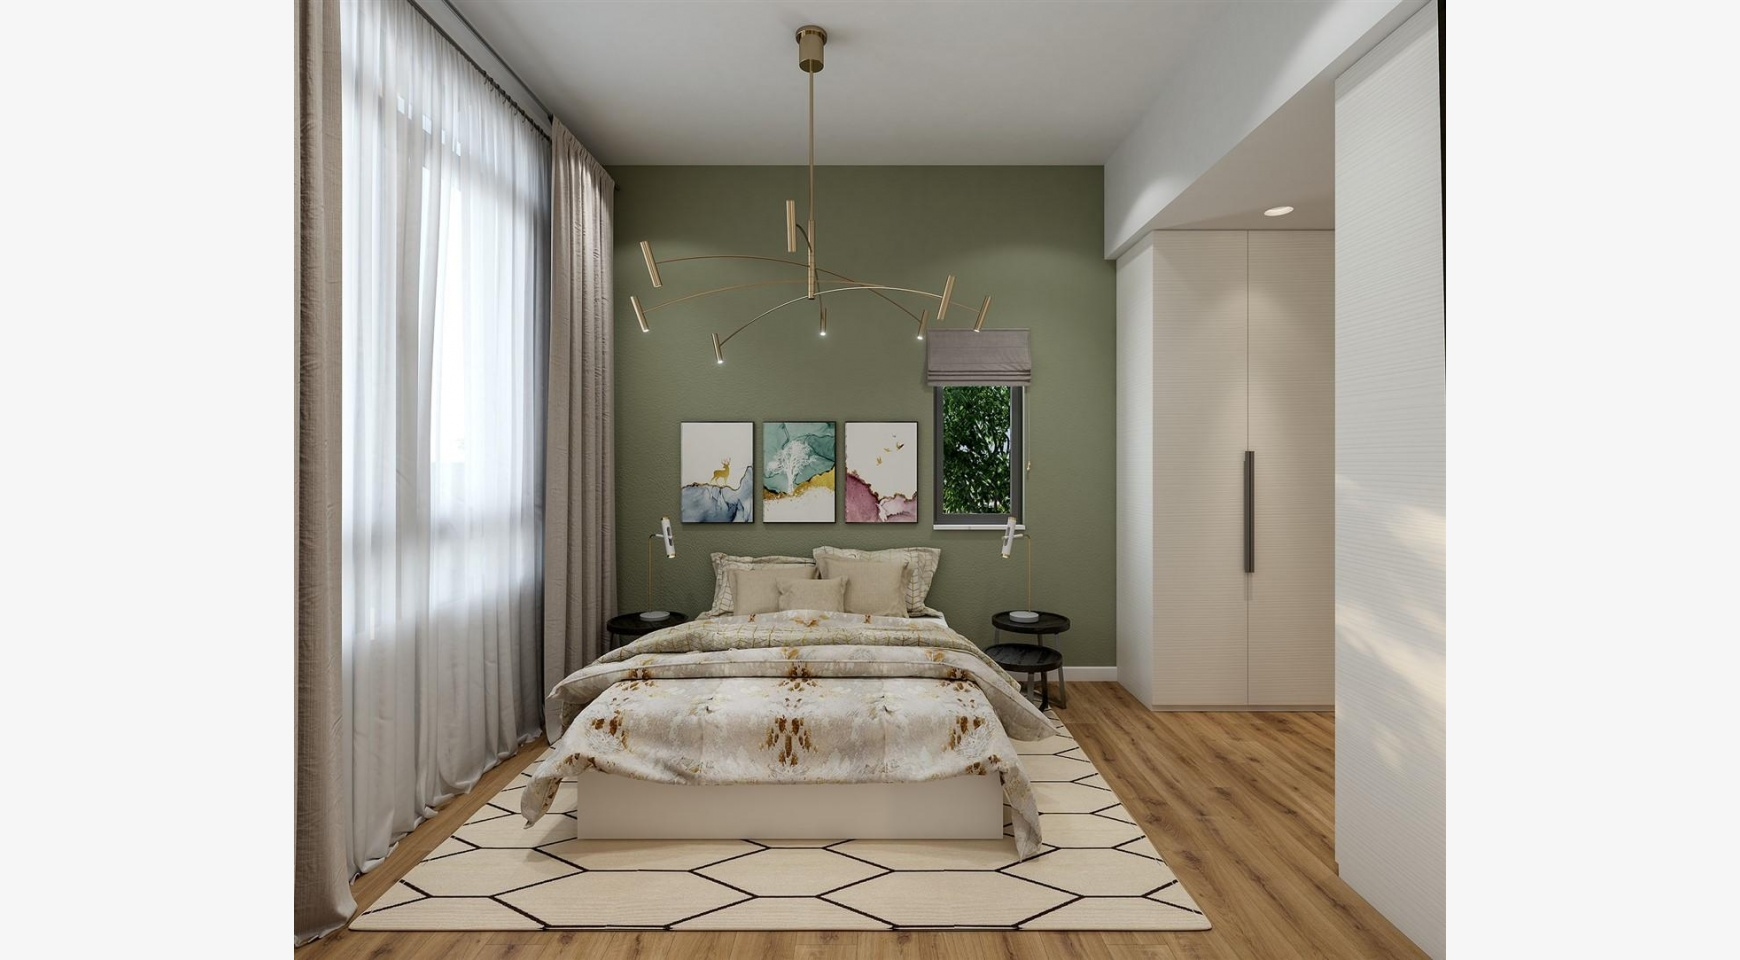 Urban City Residences, Block A. New Spacious 3 Bedroom Apartment 201 in the City Centre - 23